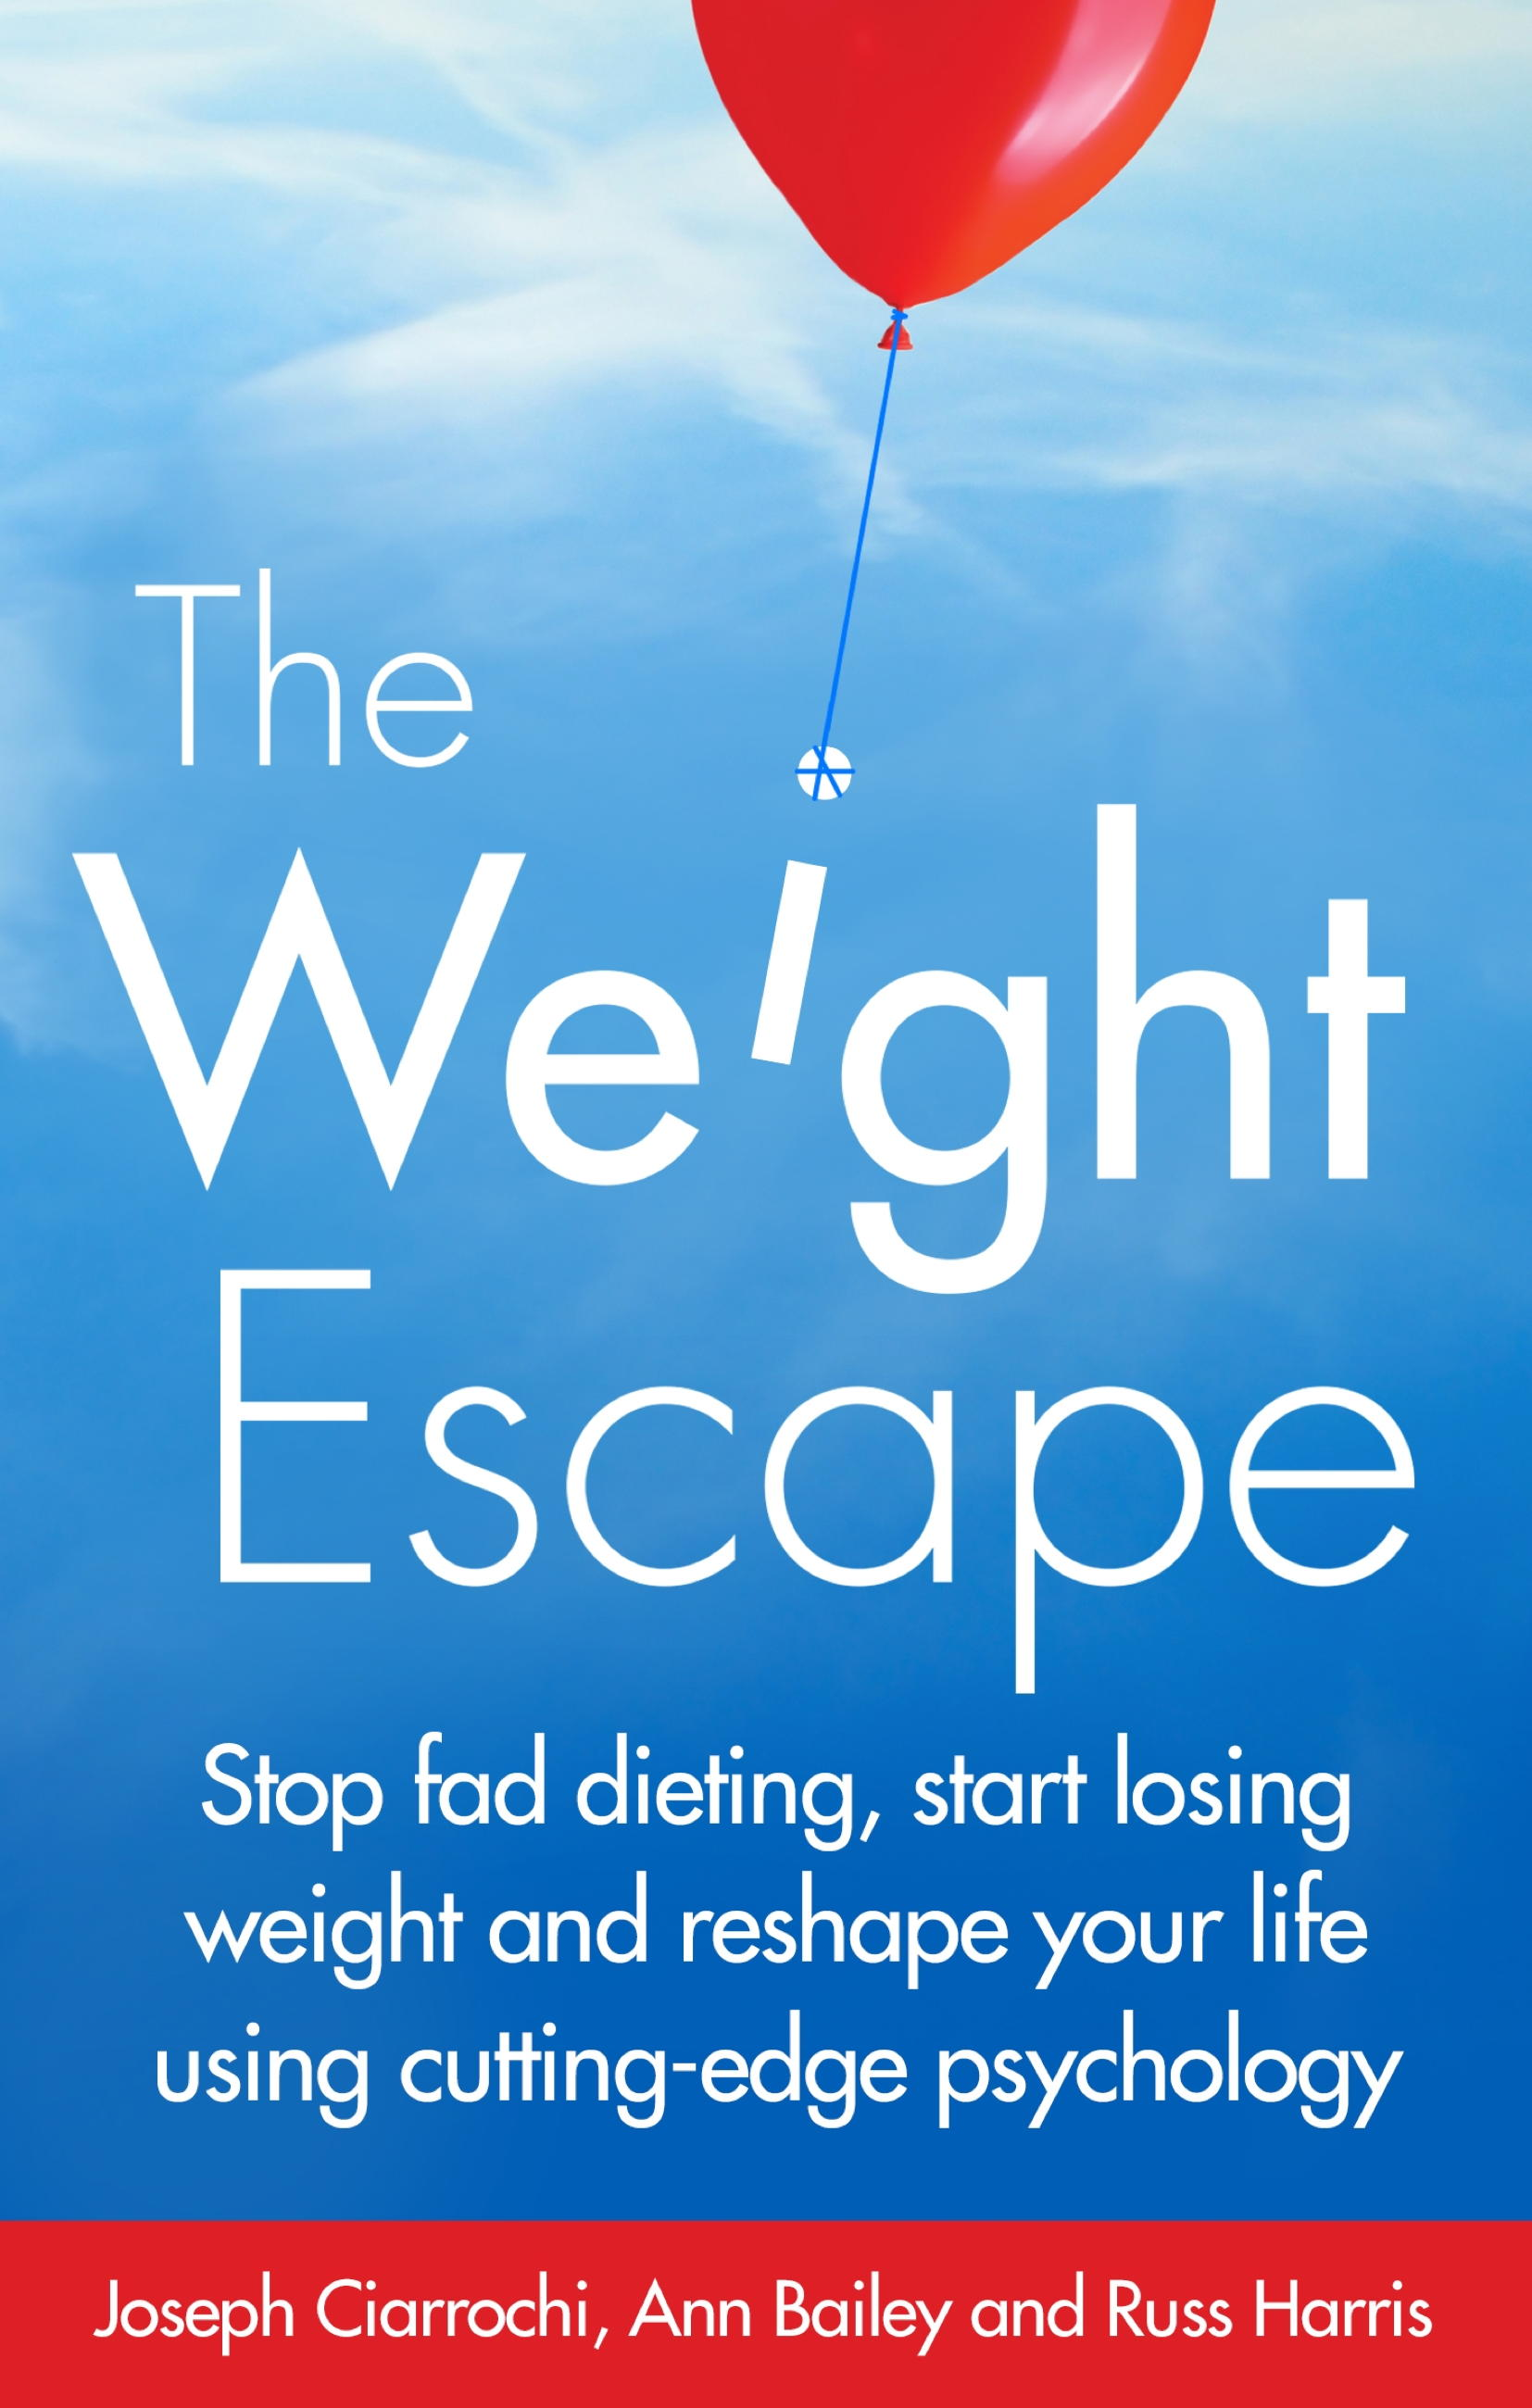 The Weight Escape